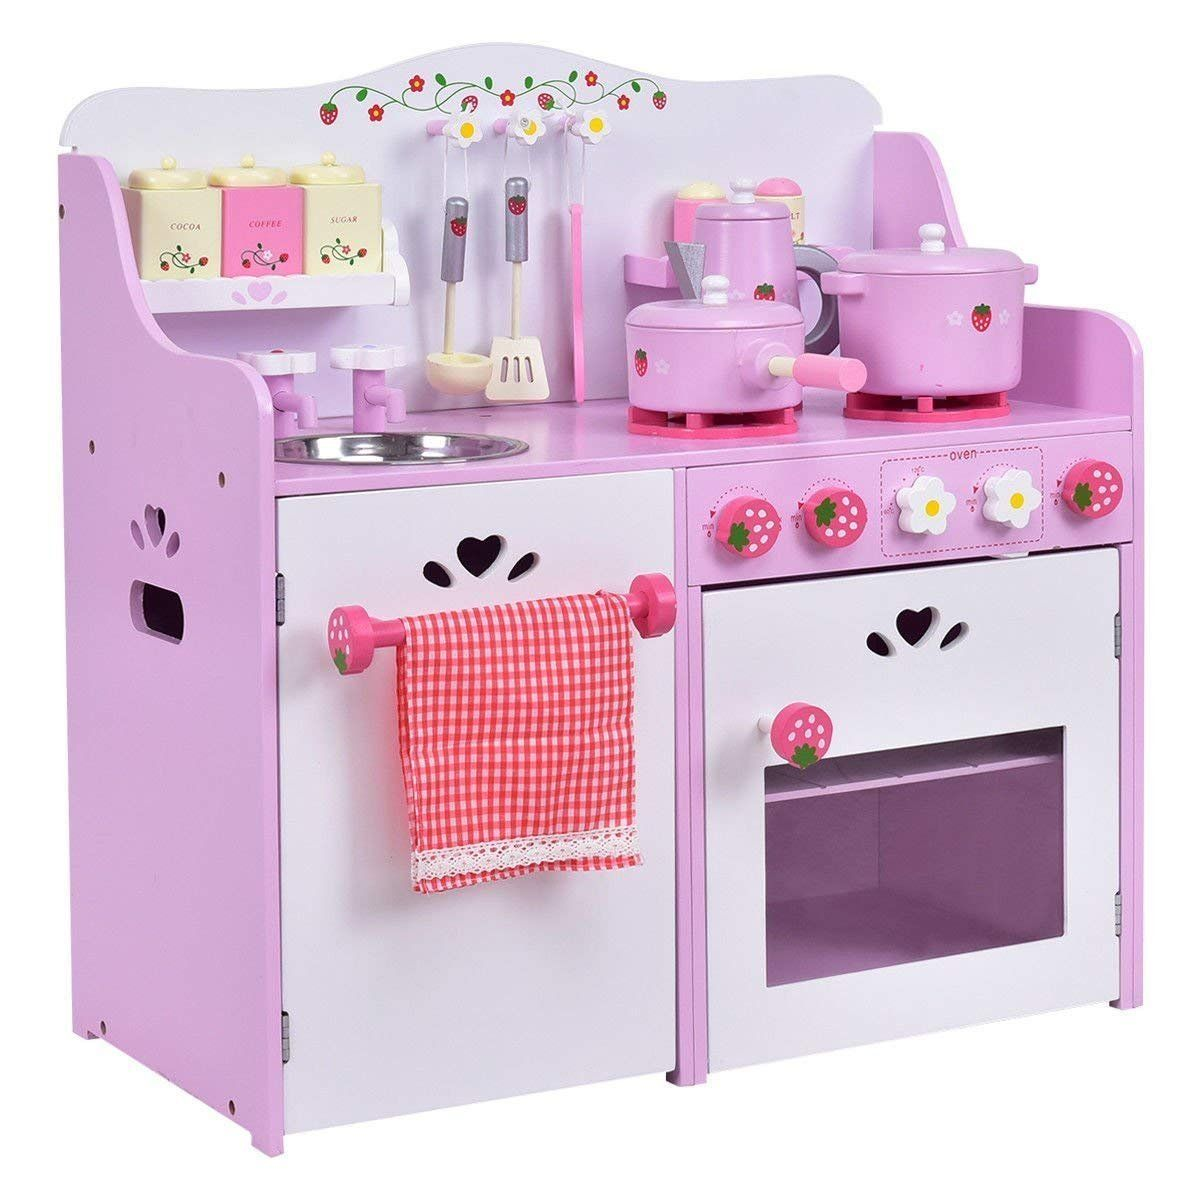 Allgoodsdelight kitchen toy strawberry pretend cooking agd